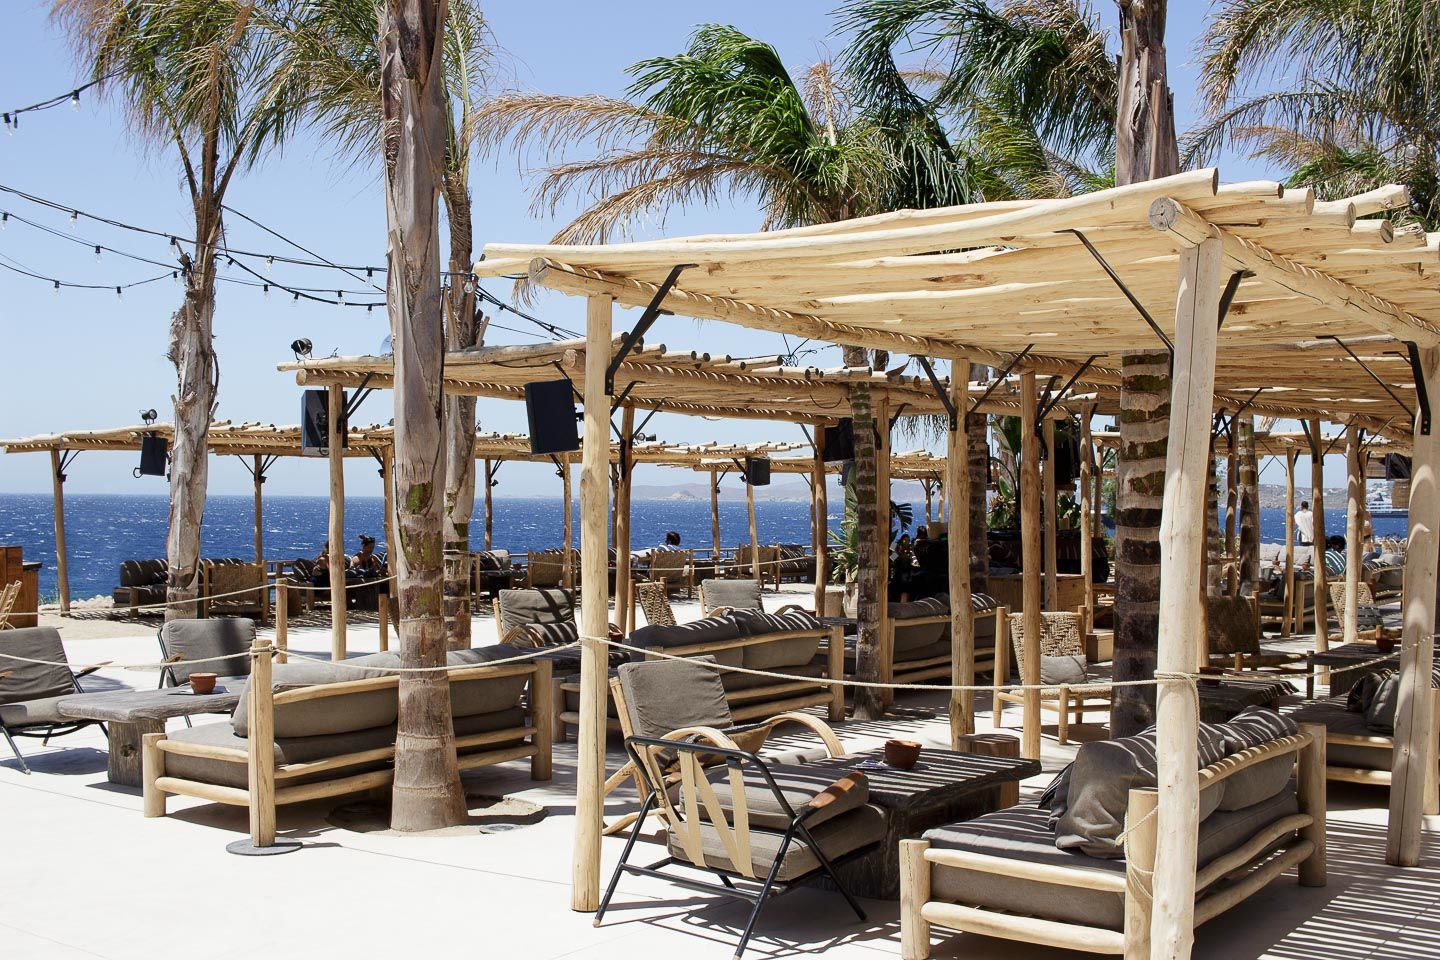 Best Island Beaches For Partying Mykonos St Barts: BEST SPOTS ON THE ISLAND